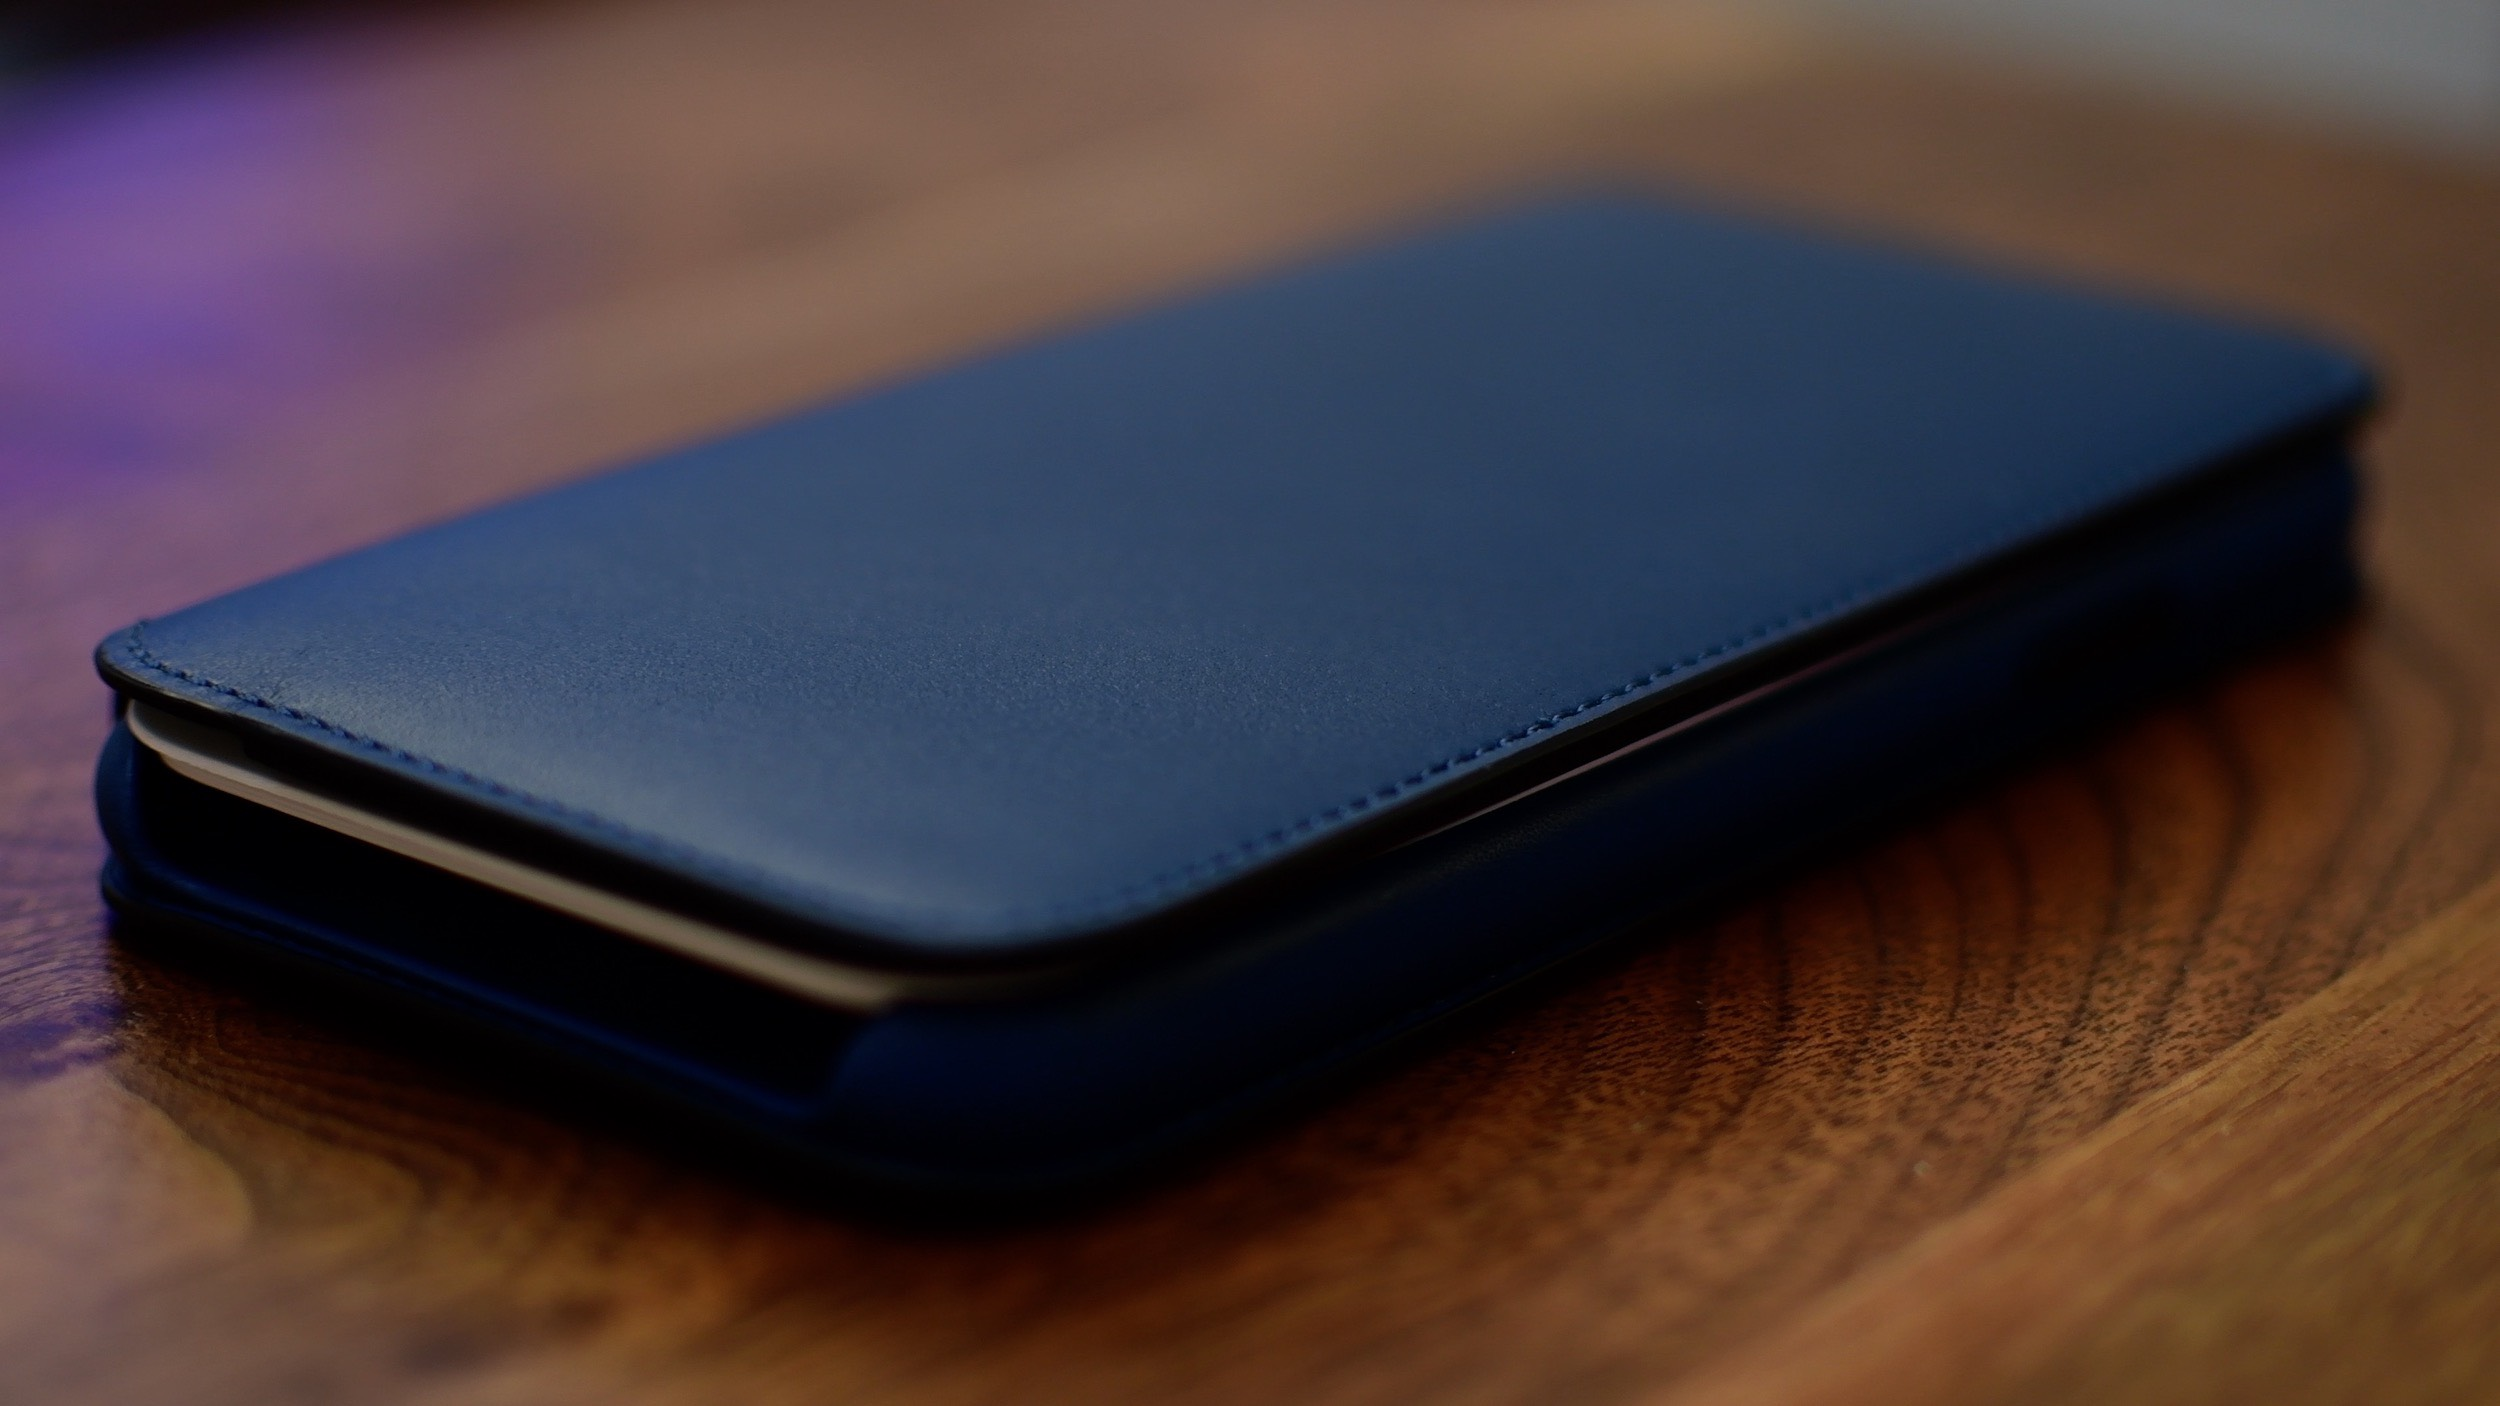 official photos f88ac 39fba Hands on with Apple's folio case for iPhone X—but is it worth $99?